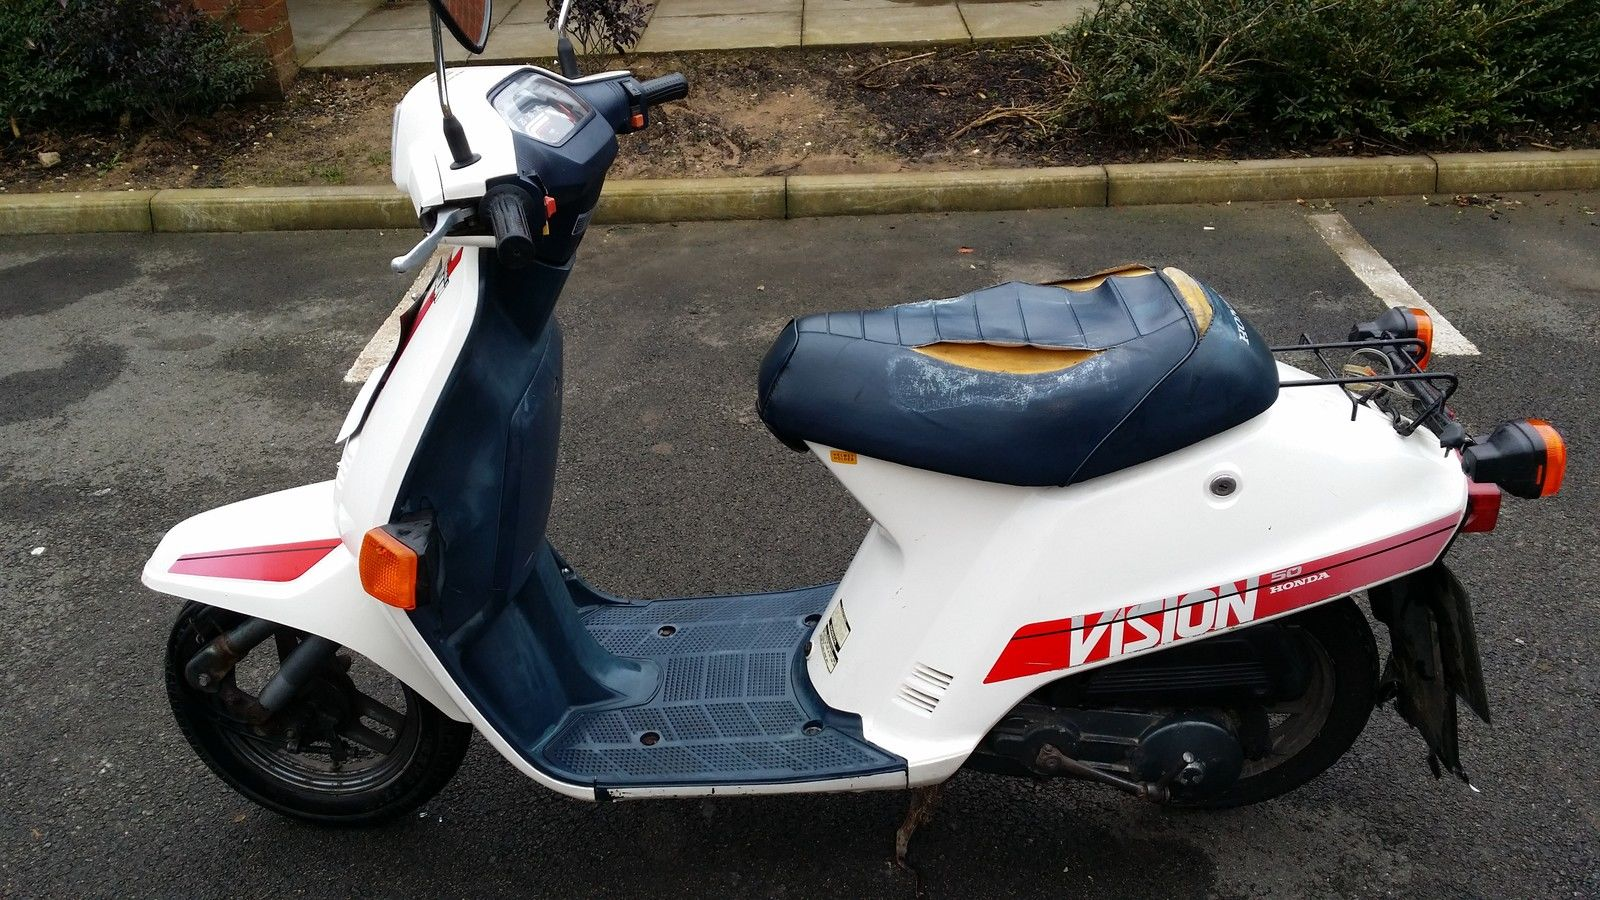 honda vision 50 ne50mff retro 90 39 s 49cc moped scooter. Black Bedroom Furniture Sets. Home Design Ideas